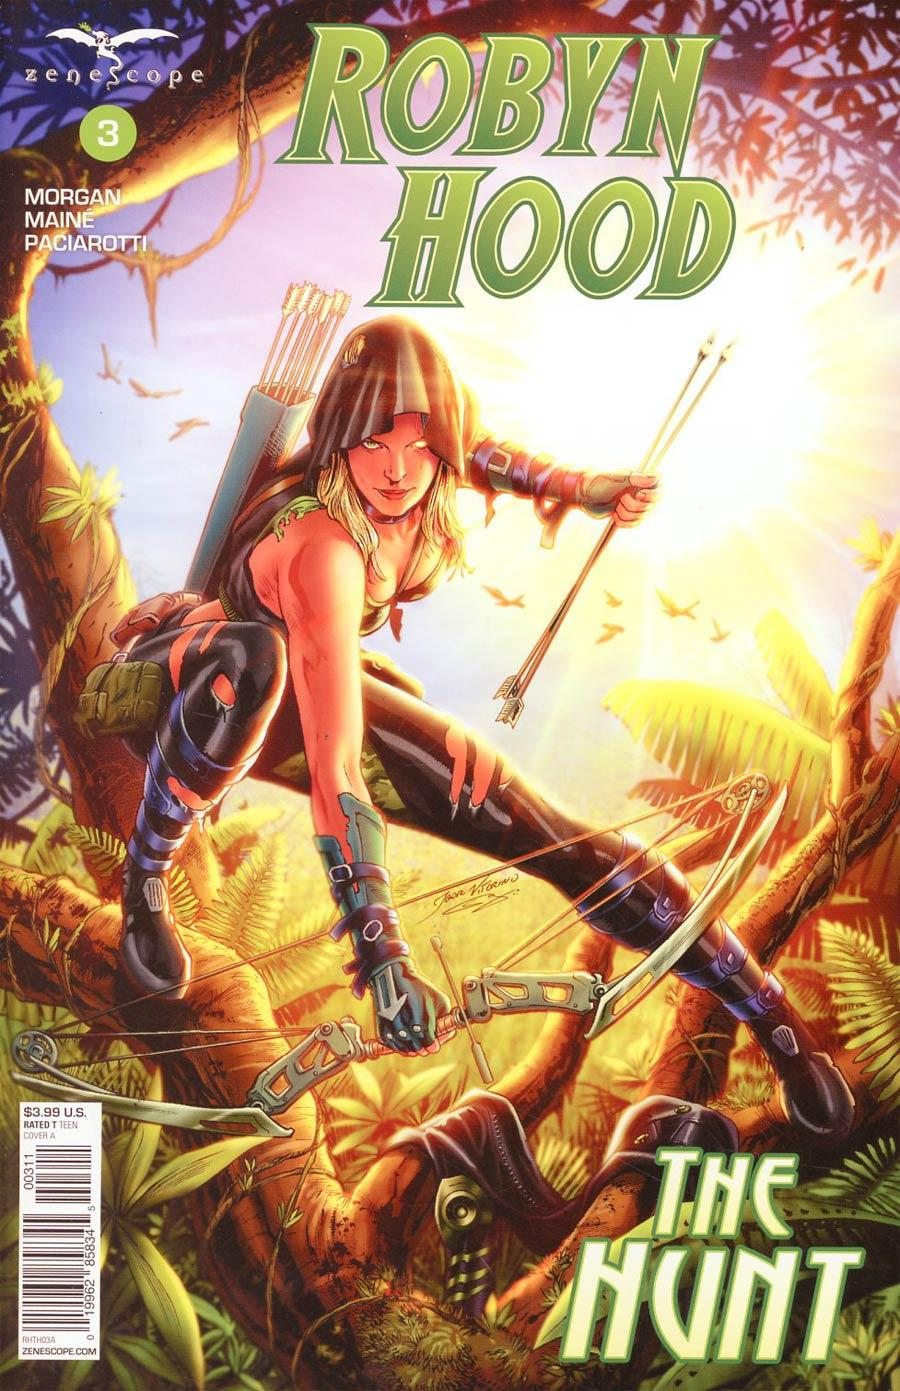 Grimm Fairy Tales Presents Robyn Hood The Hunt Vol. 1 #3